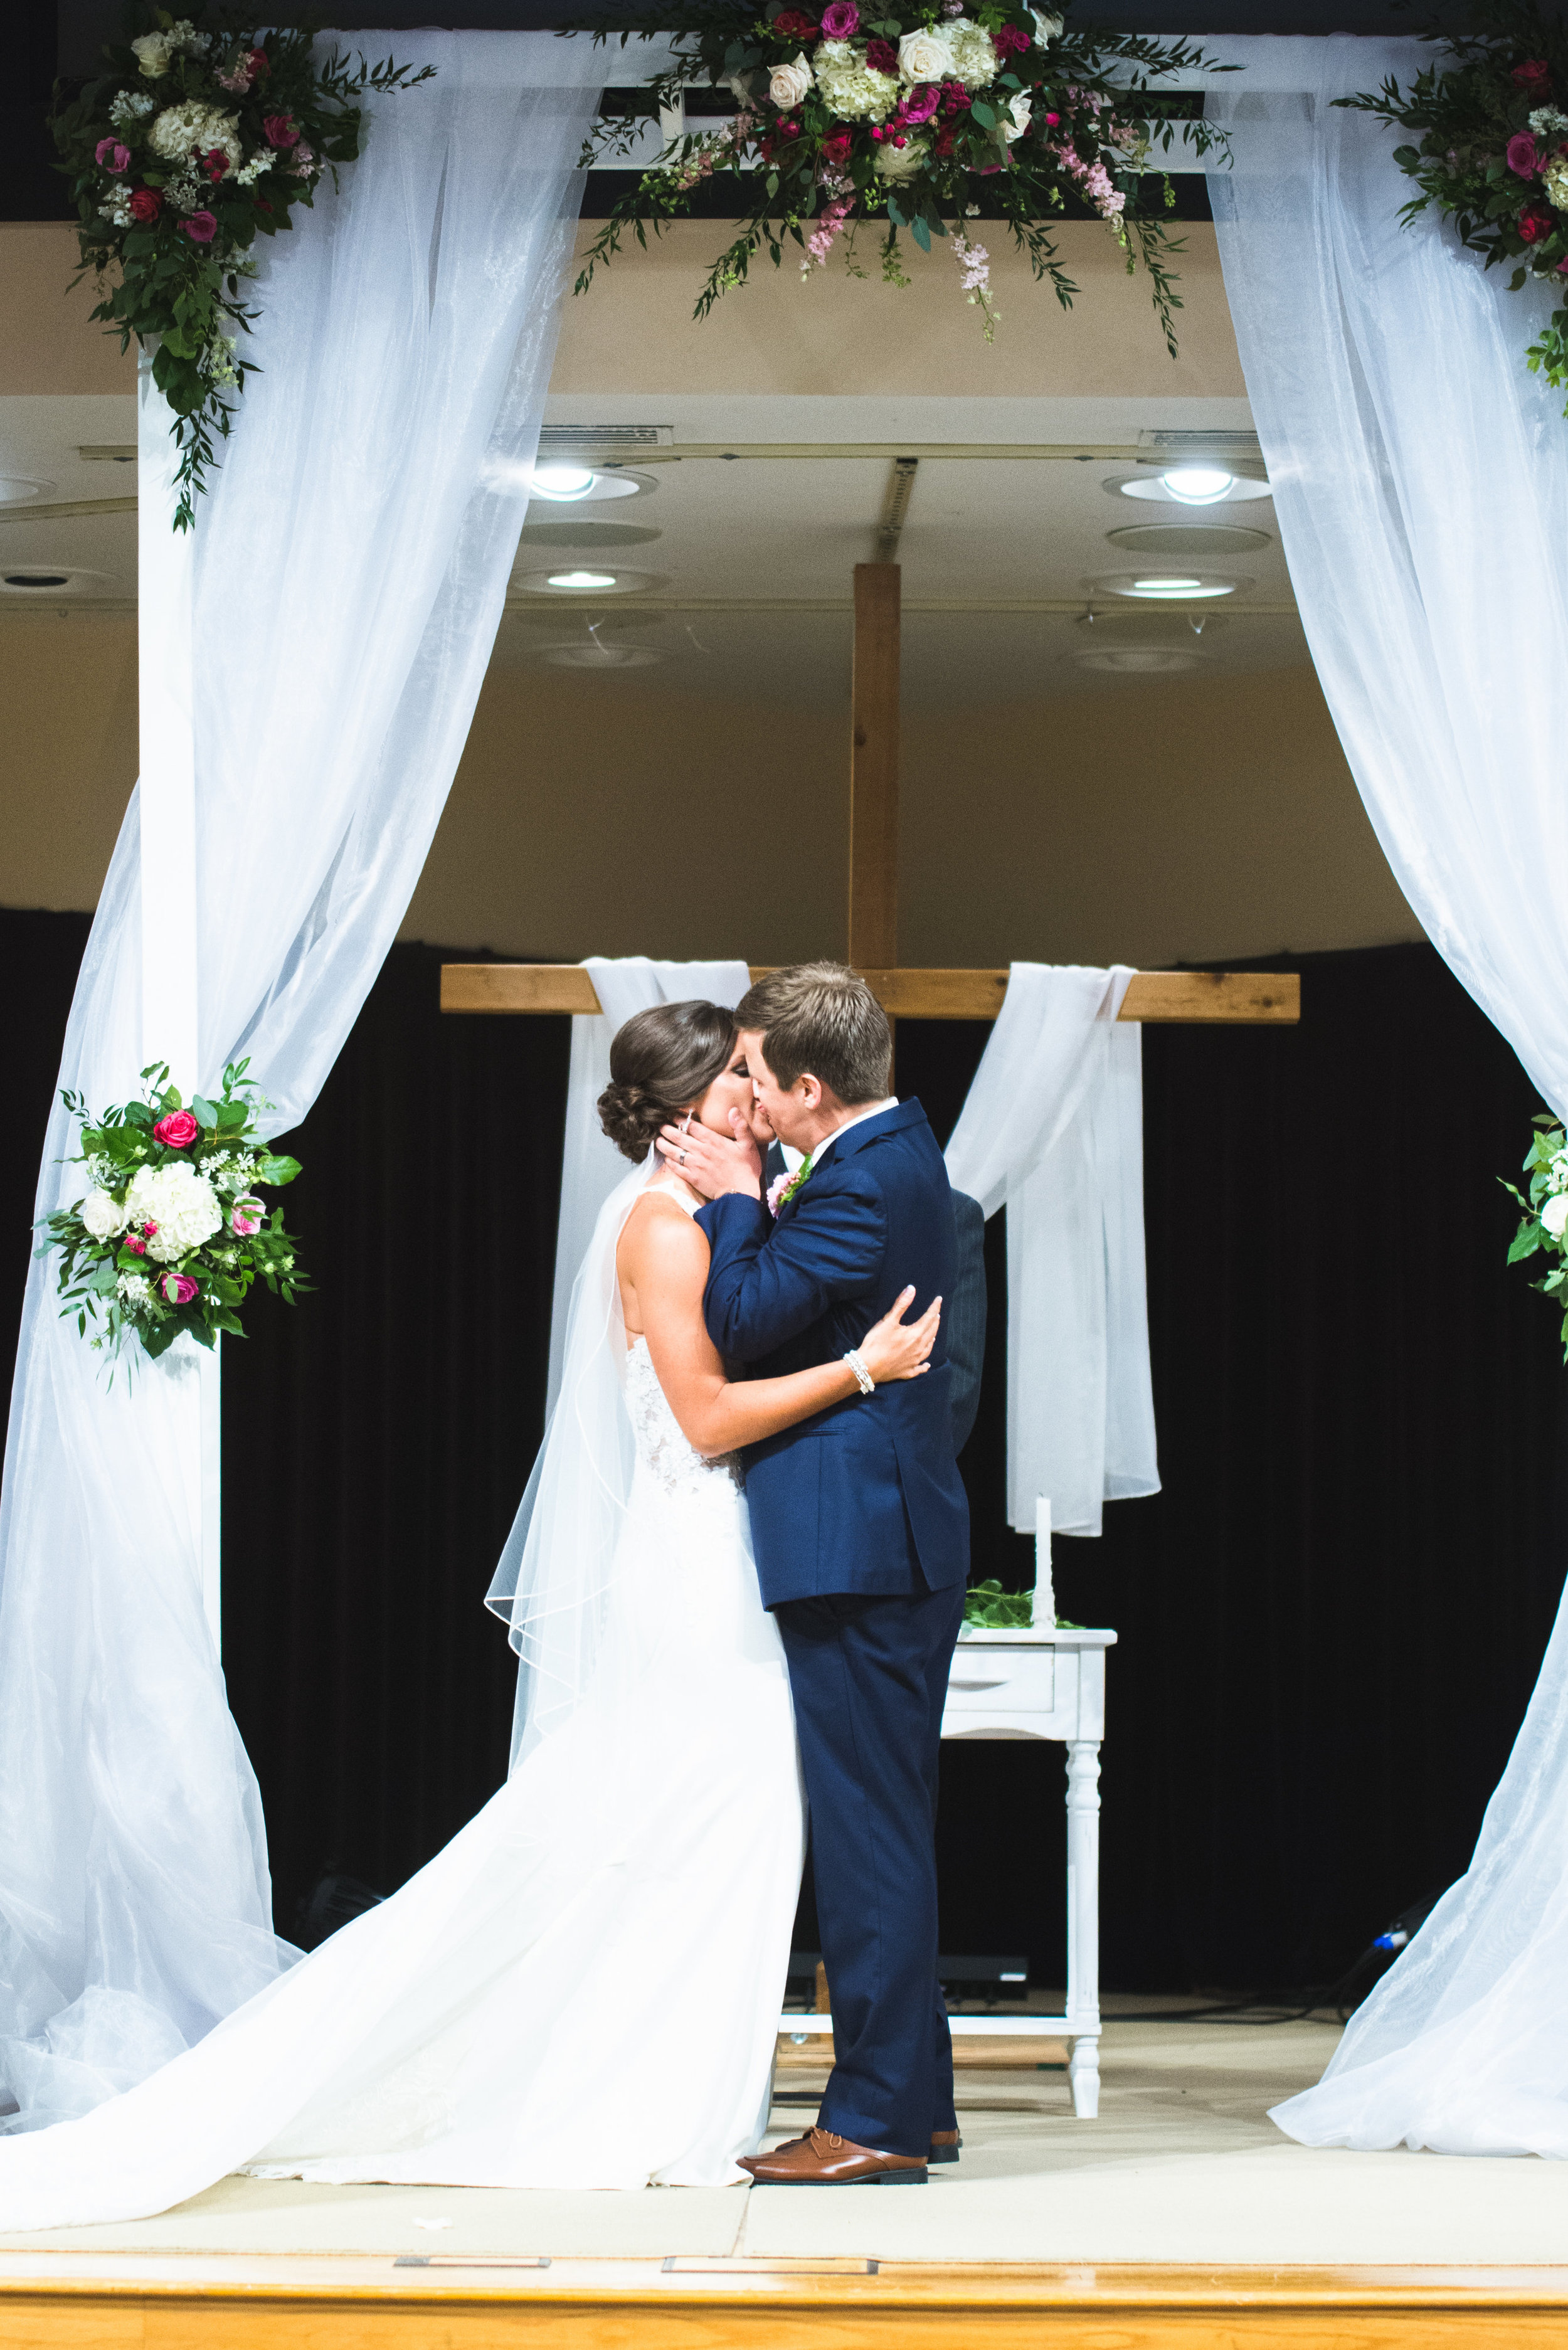 """Courtney + Luke - """"We had the best time working with Thistles for our wedding. Maggie did an amazing job and helped us have the dream wedding we hoped for. She responded on time to everything, and made sure everything was like my vision!"""" - Courtney W.[Lisa Lytton Photography - 2018]"""